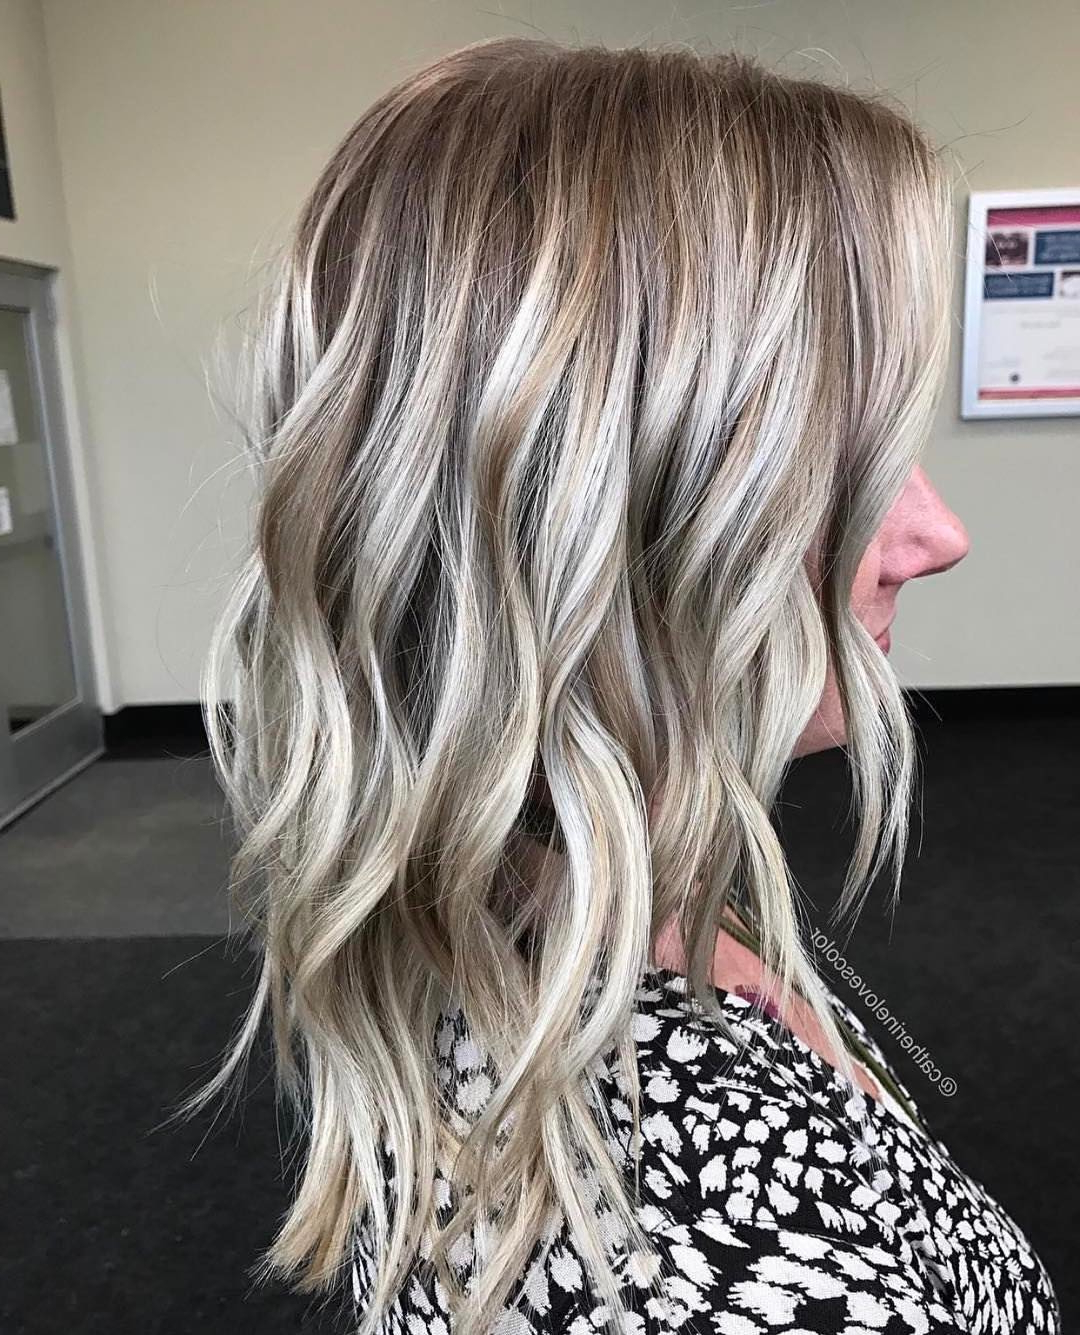 25 Cool Stylish Ash Blonde Hair Color Ideas For Short, Medium, Long Hair With Regard To Fashionable Loose Layers Hairstyles With Silver Highlights (View 20 of 20)